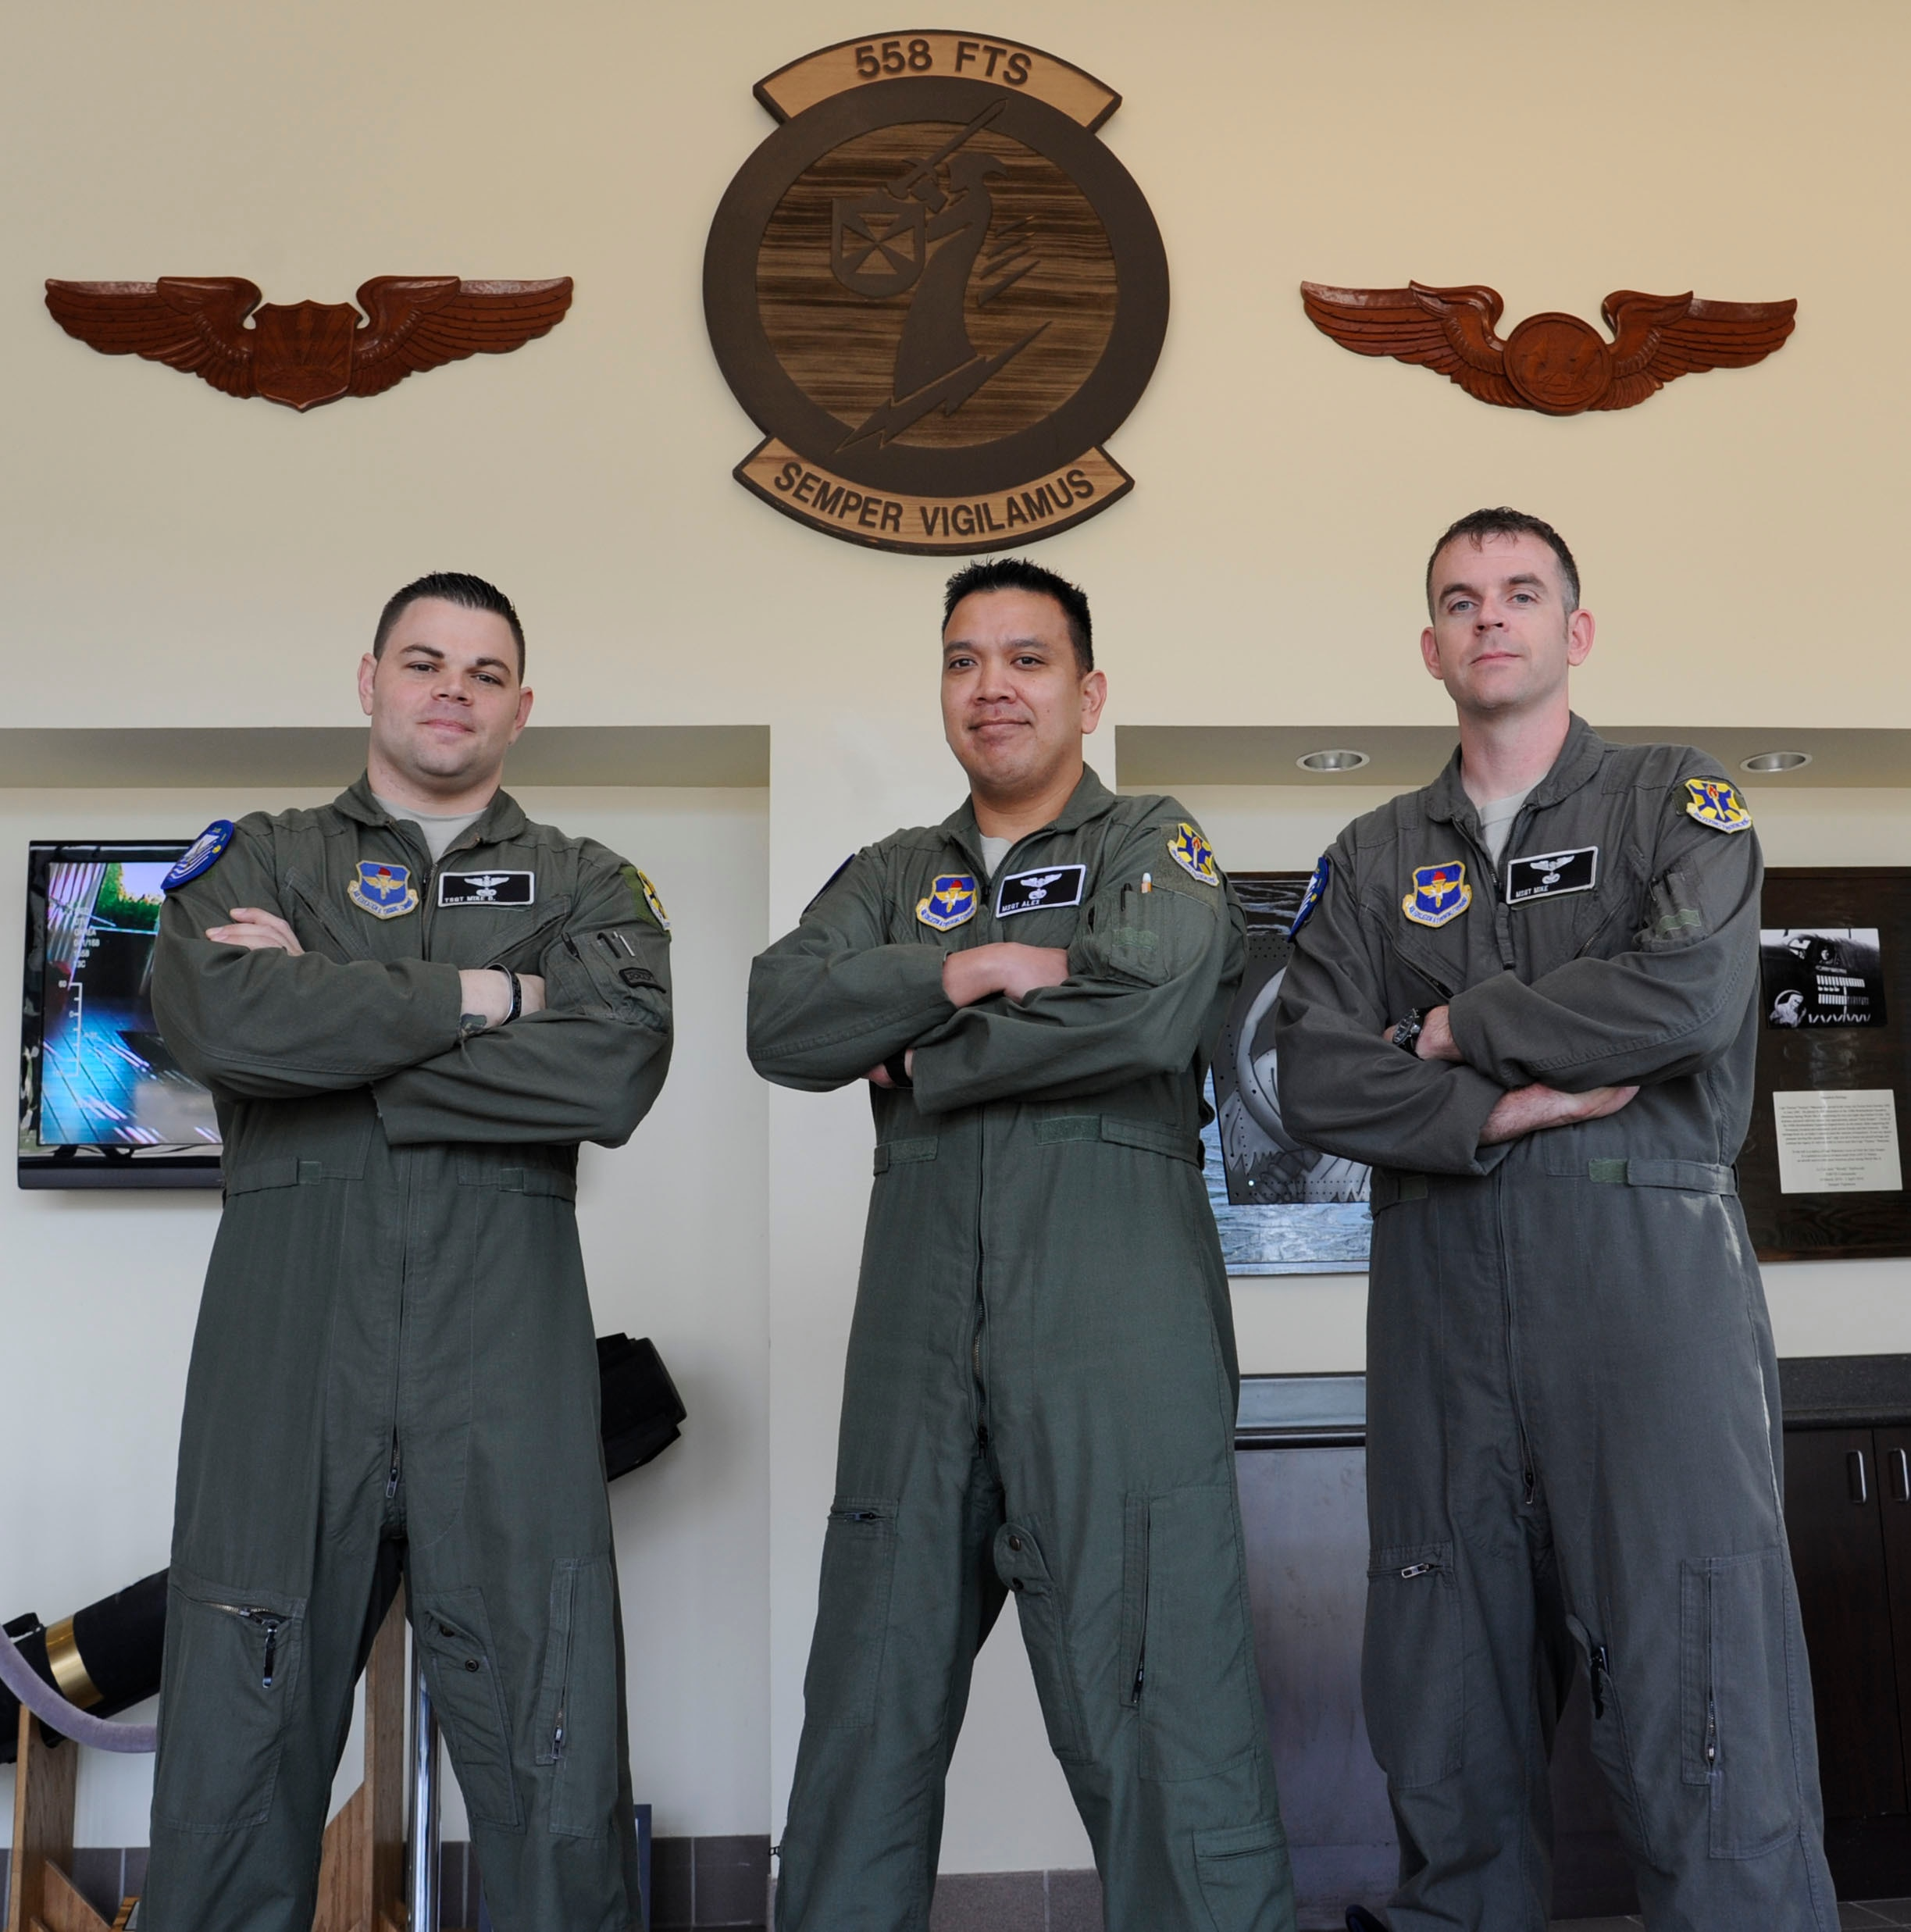 Fresh off graduation, these are the Air Force's first enlisted RPA pilots